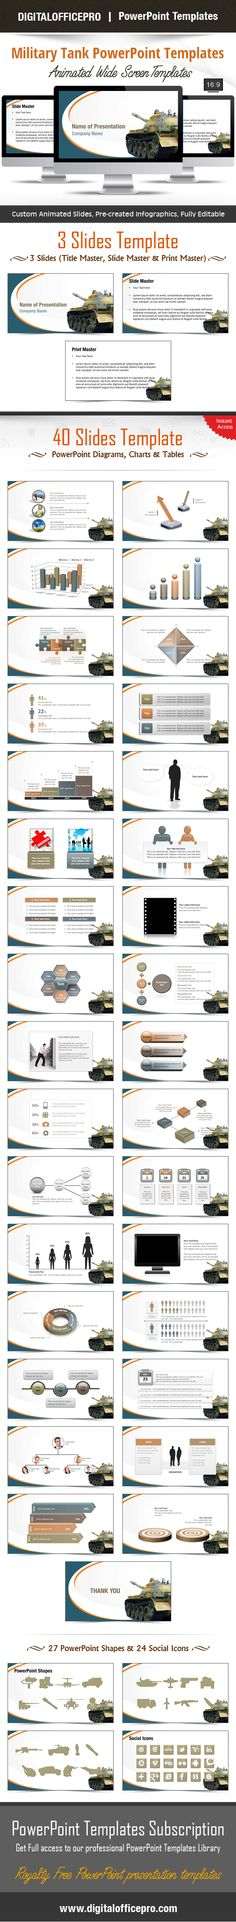 Synergy minimal powerpoint template presentation templates synergy minimal powerpoint template presentation templates creative powerpoint templates and creative powerpoint toneelgroepblik Choice Image